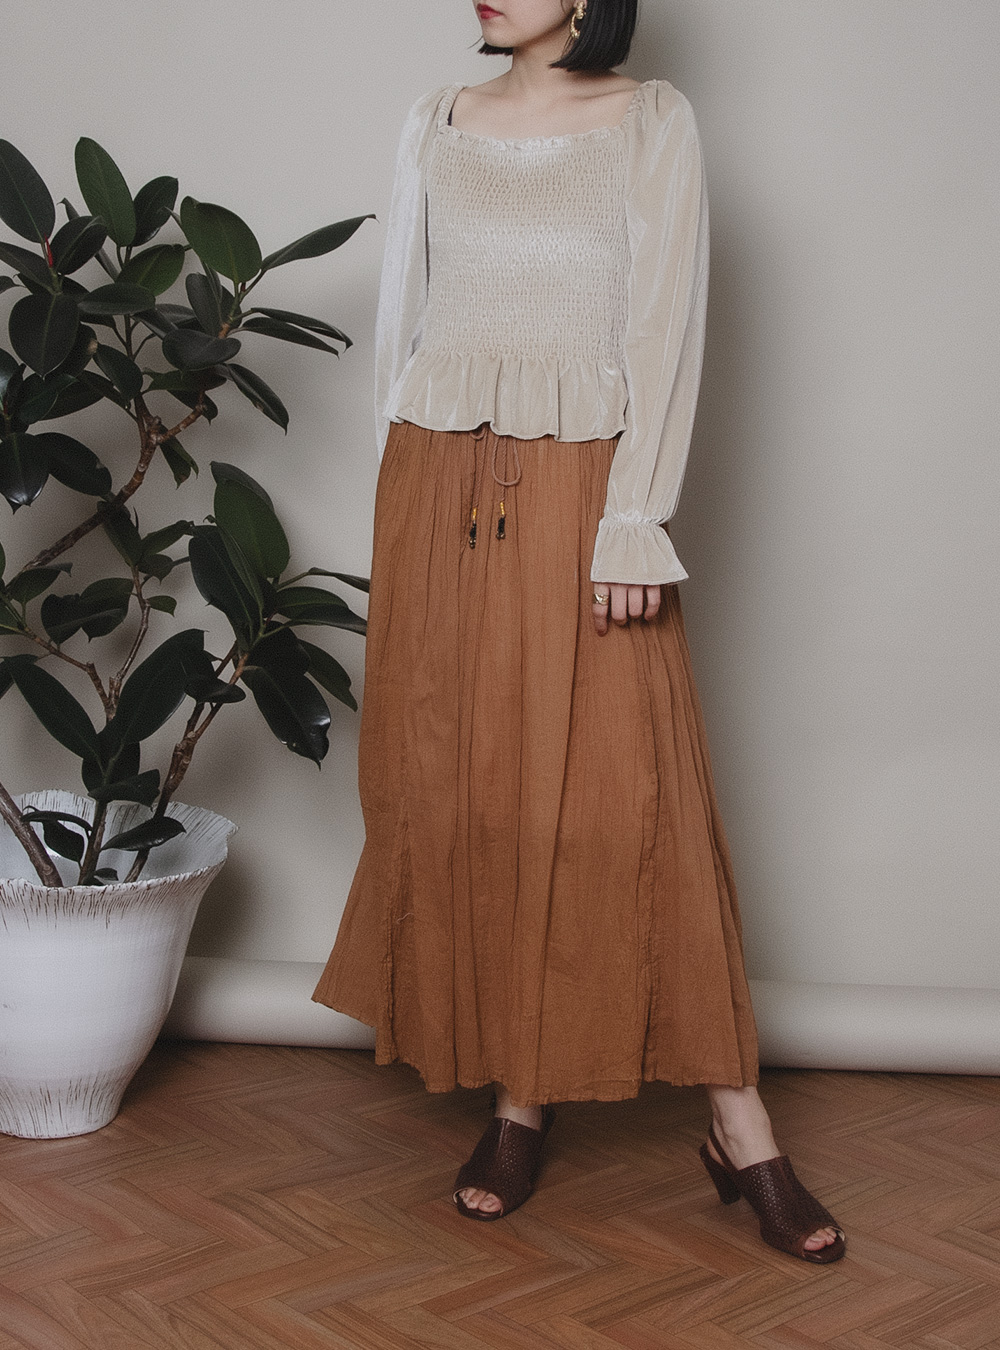 Brown Color Ethnic Indian Cotton Skirt